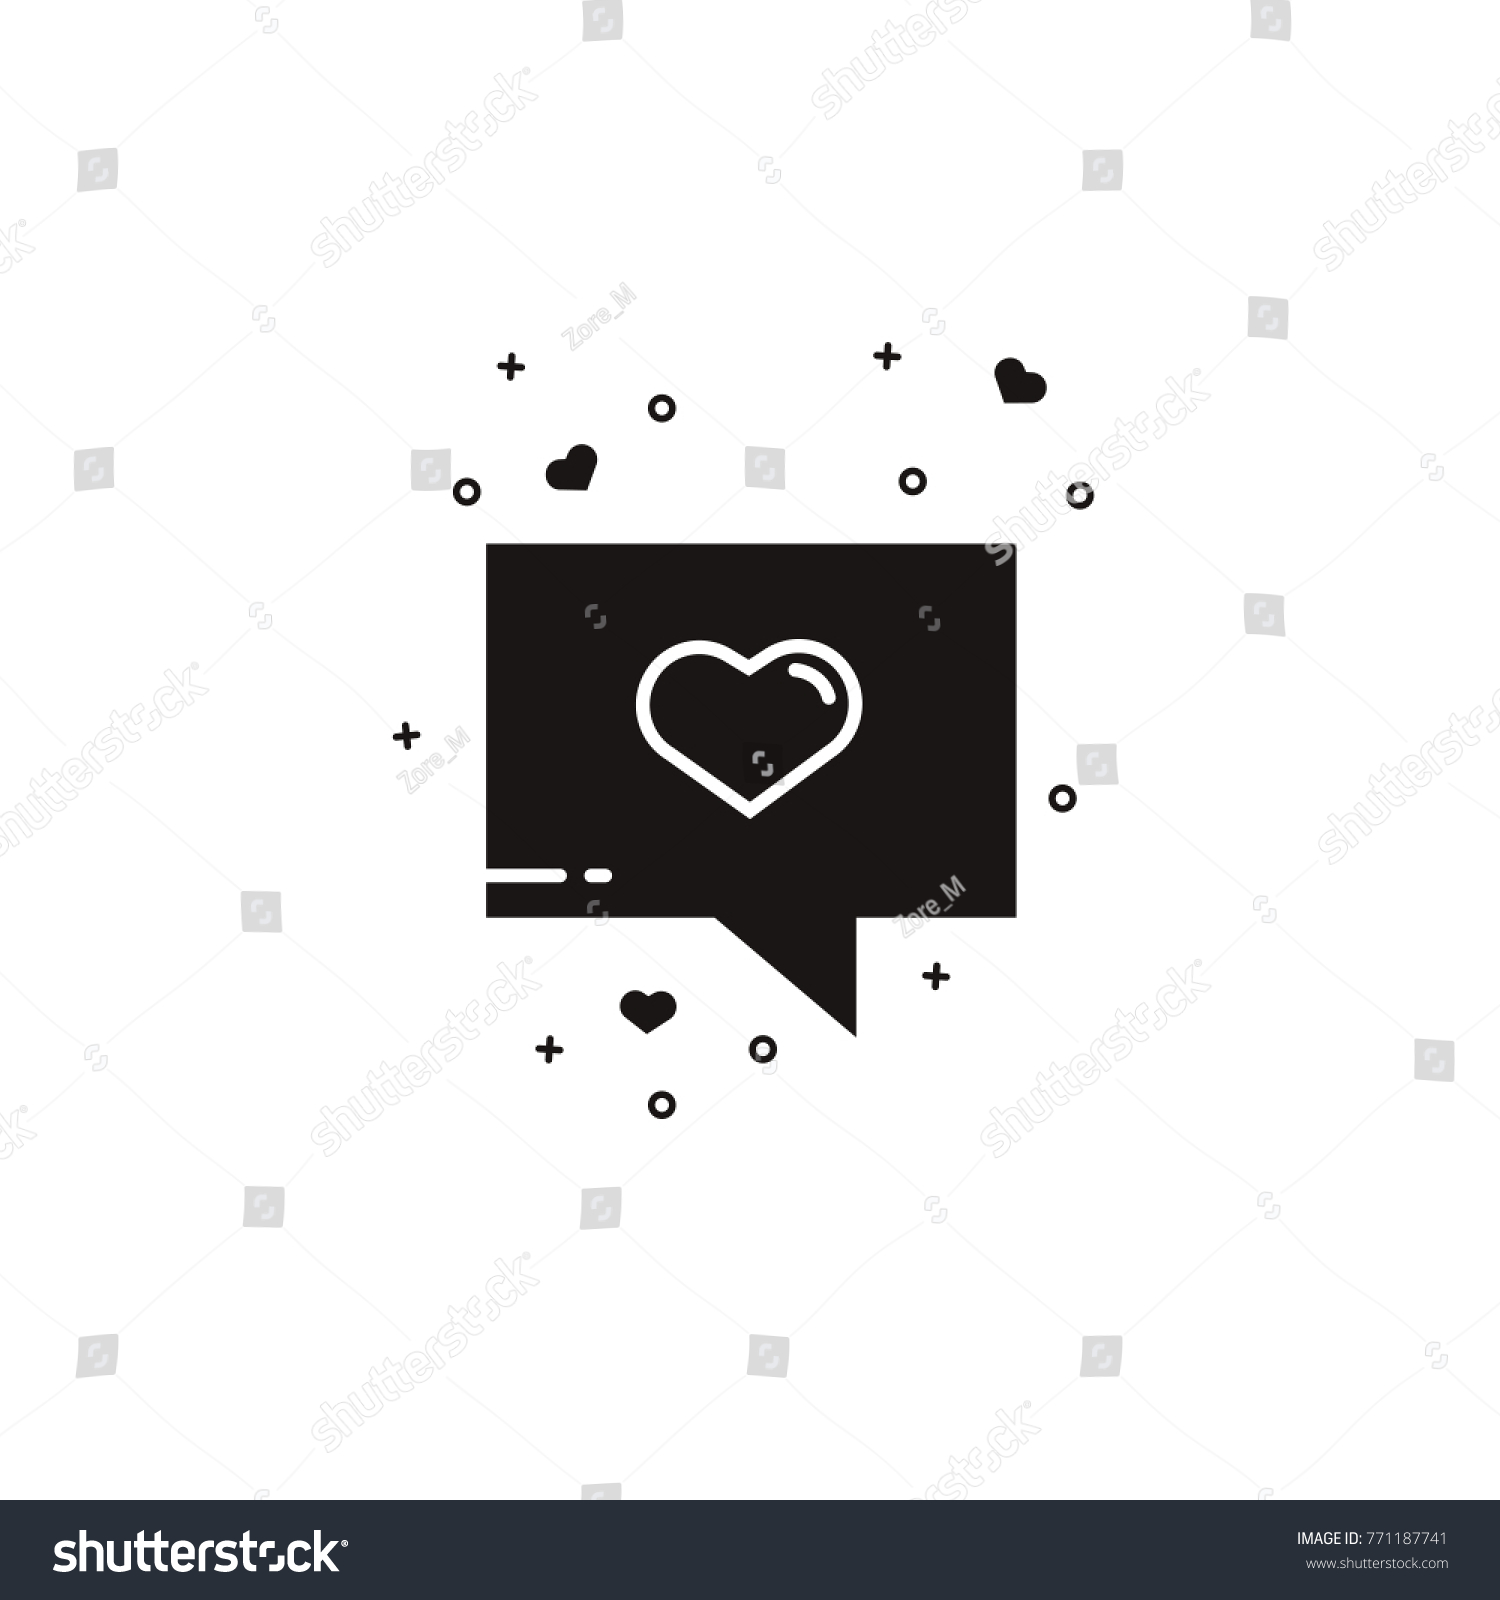 Speech rectangle bubble heart black silhouette stock vector speech rectangle bubble with heart black silhouette comic balloon sign for messaging texting buycottarizona